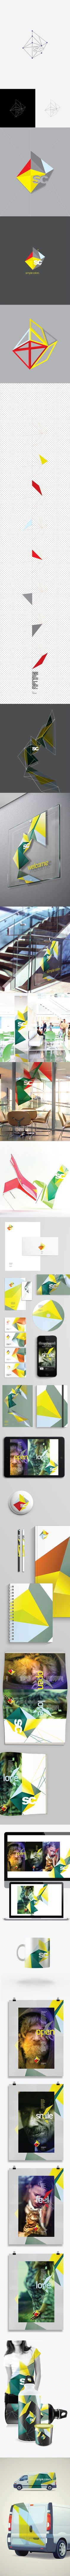 branding, identity: Simple Colors by Graphic Man, via Behance Corporate Design, Brand Identity Design, Graphic Design Branding, Corporate Identity, Business Branding, Logo Design, Visual Identity, Web Design, Website Design